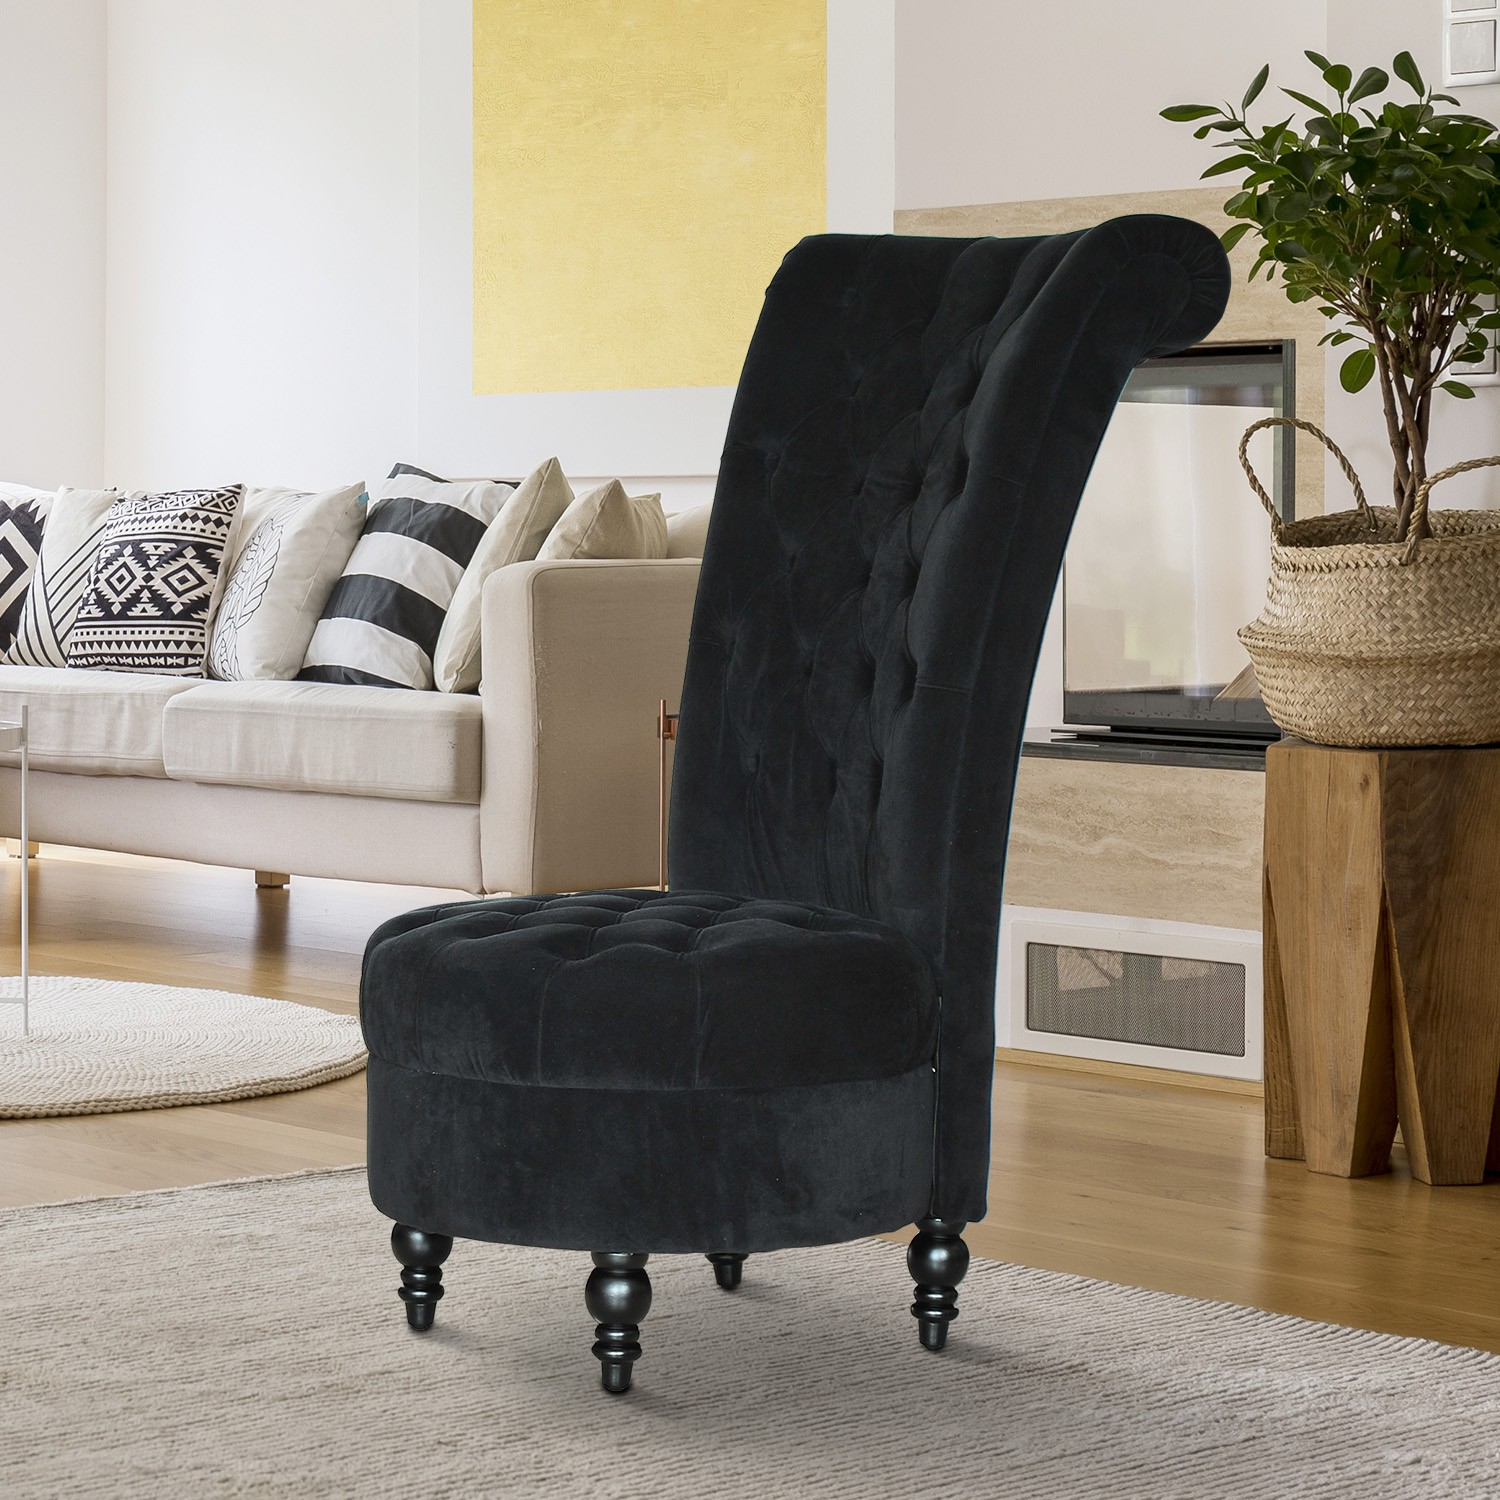 """Homcom 45"""" Tufted High Back Velvet Accent Chair Living With Regard To Sofas With High Backs (View 1 of 15)"""